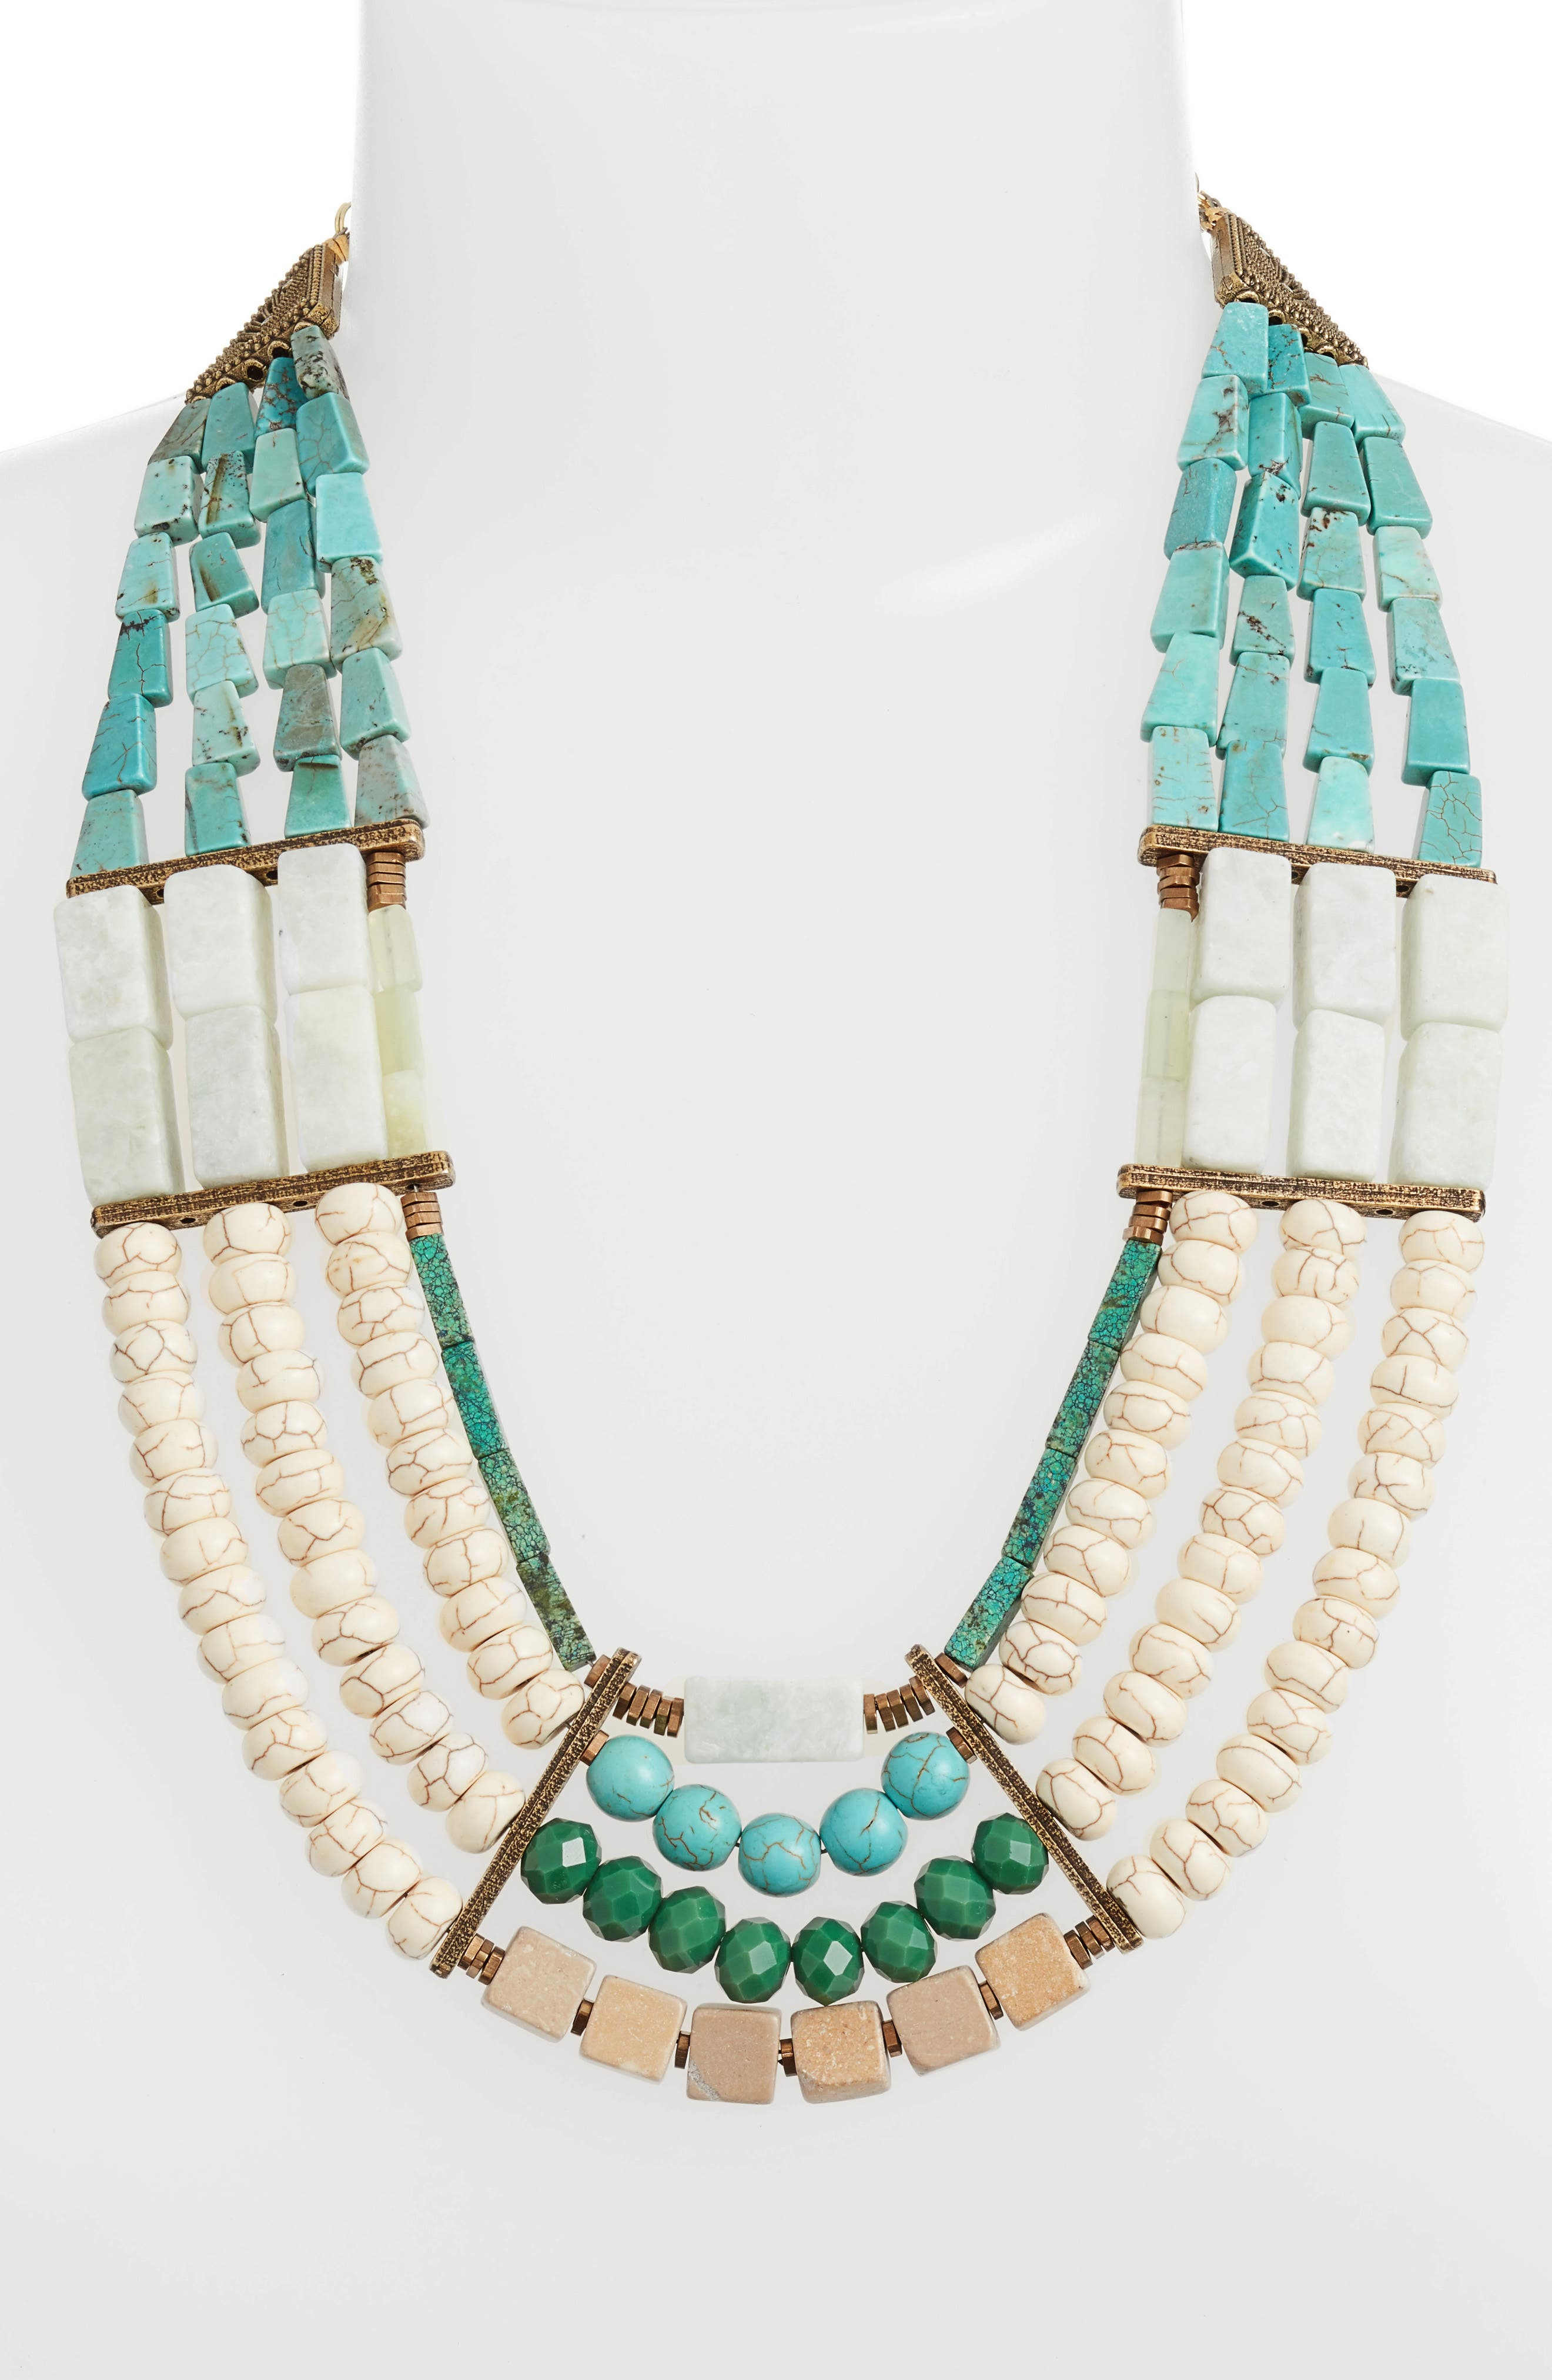 Priscilla 4-Row Statement Necklace,                             Alternate thumbnail 2, color,                             Turquoise